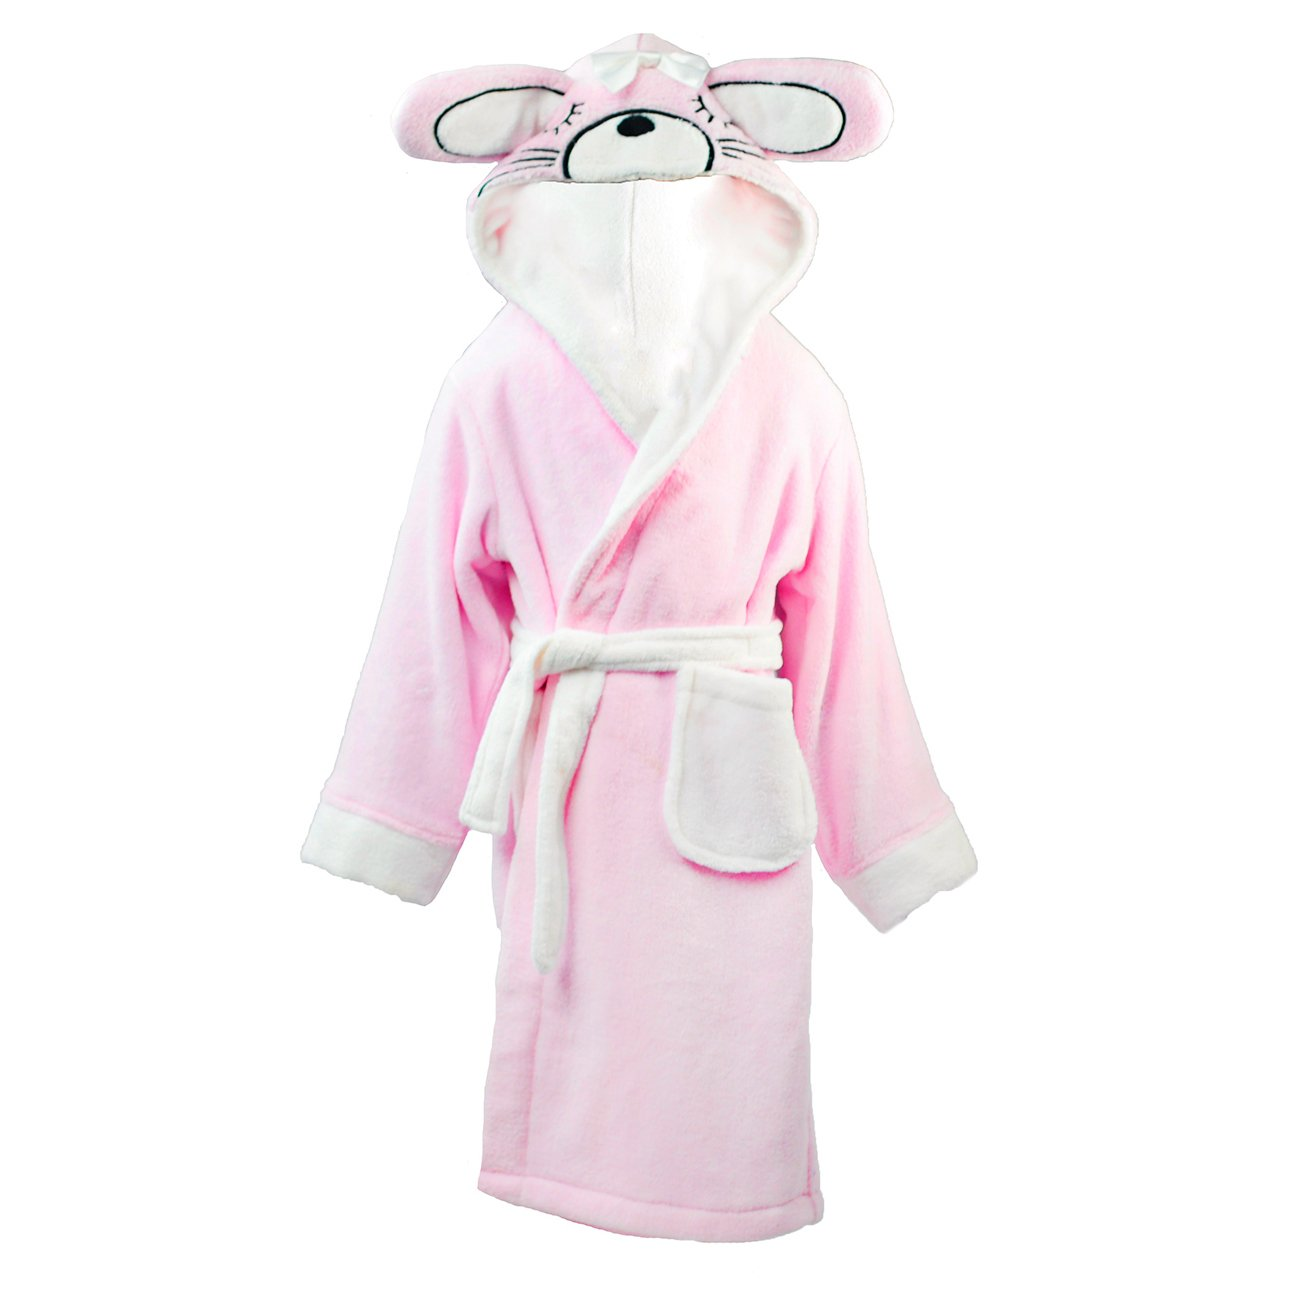 Minikidz Girls Bunny Dressing Gown Robe Animal Ears Hooded Fleece Soft Warm Cute Mini Kidz